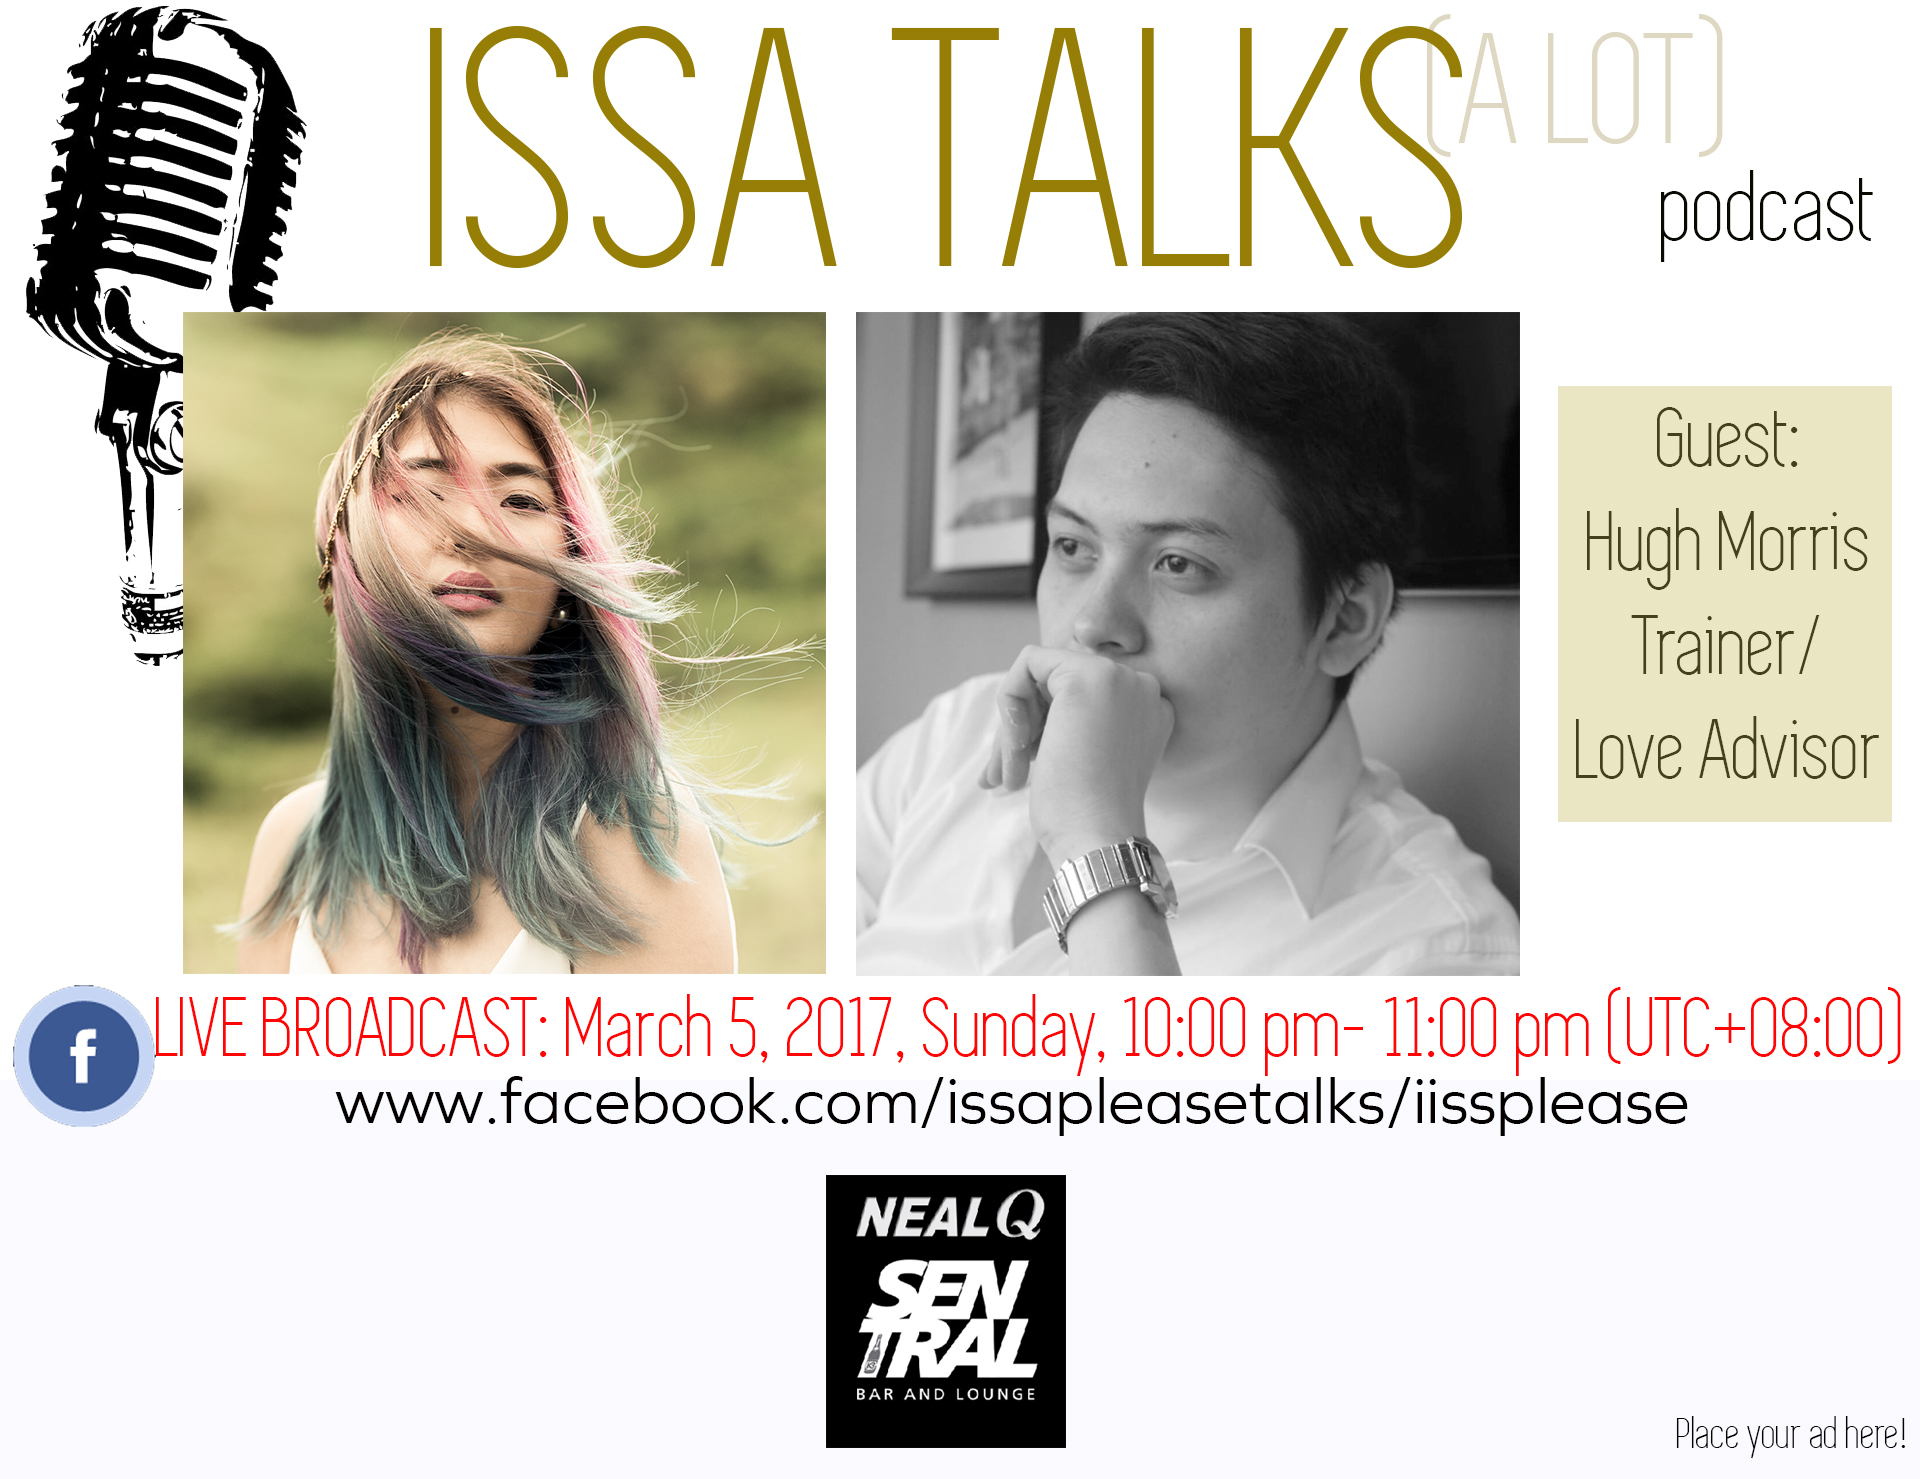 IssaTalks Ep. 3 with Hugh Morris: What You're Doing Wrong (Dating & Relationships)